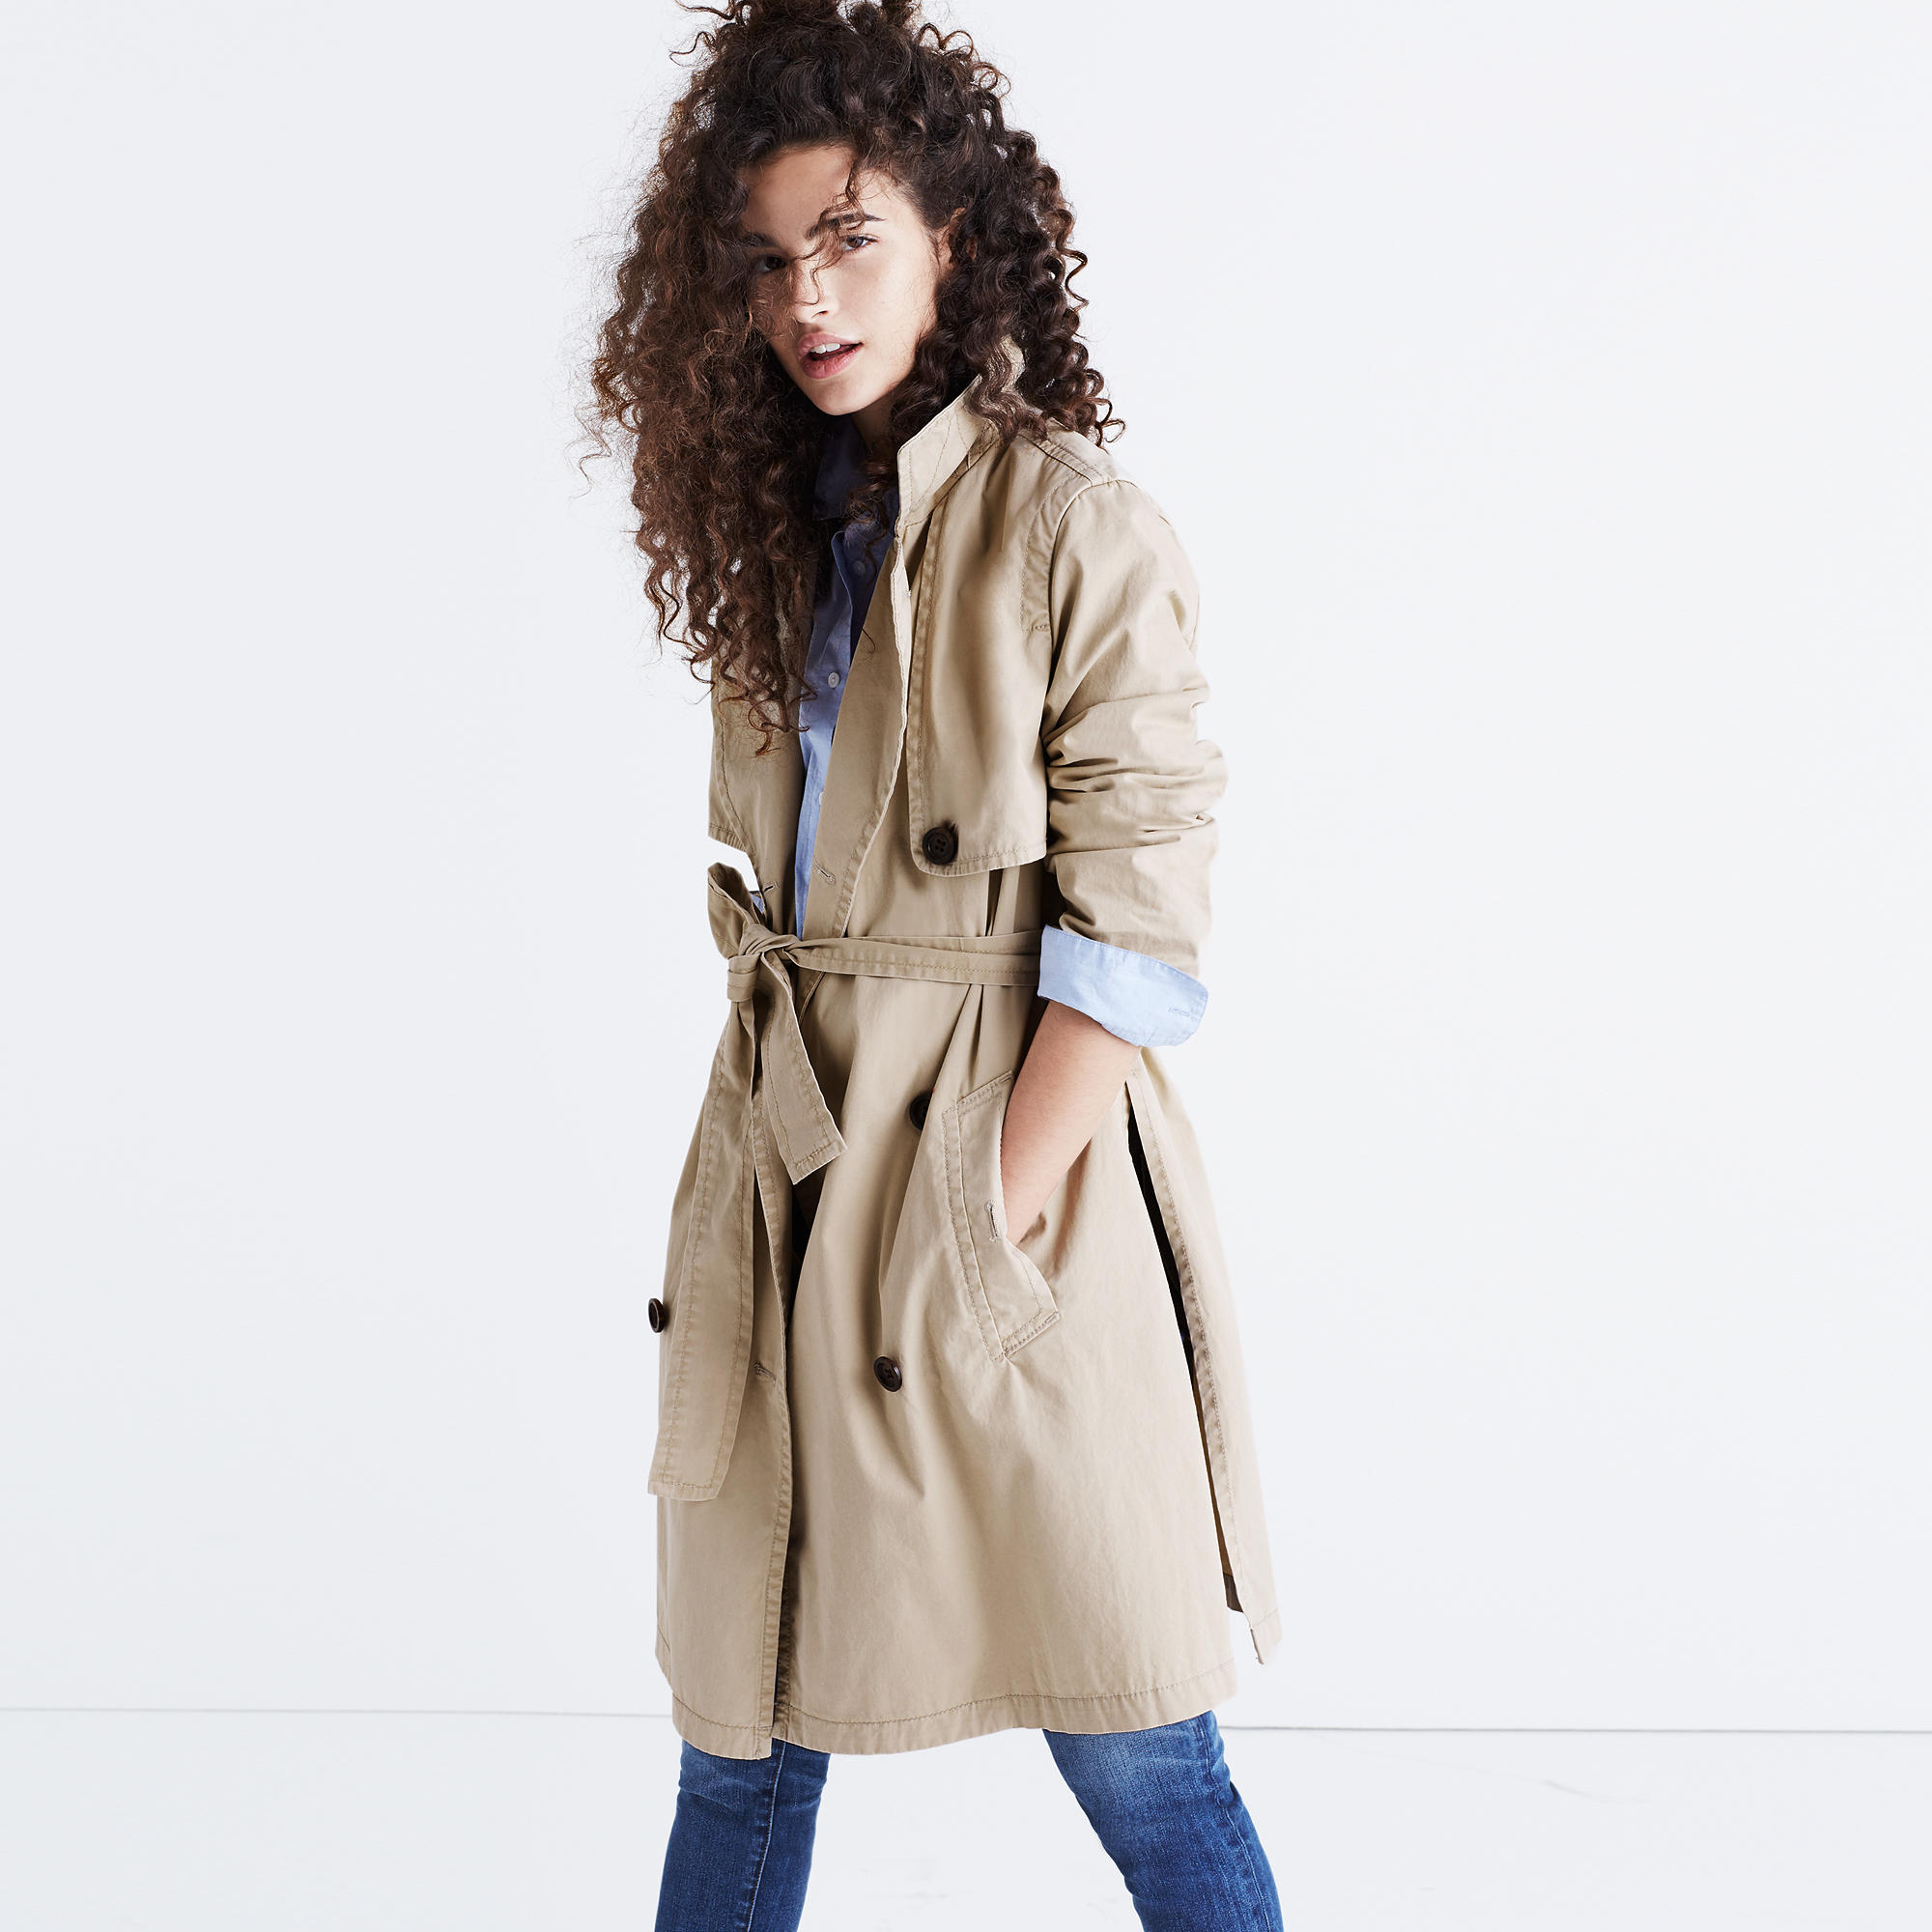 jacketsandouterwear coat enlarge prdovr trench category drapes abroad m drape jackets pdp madewell jsp